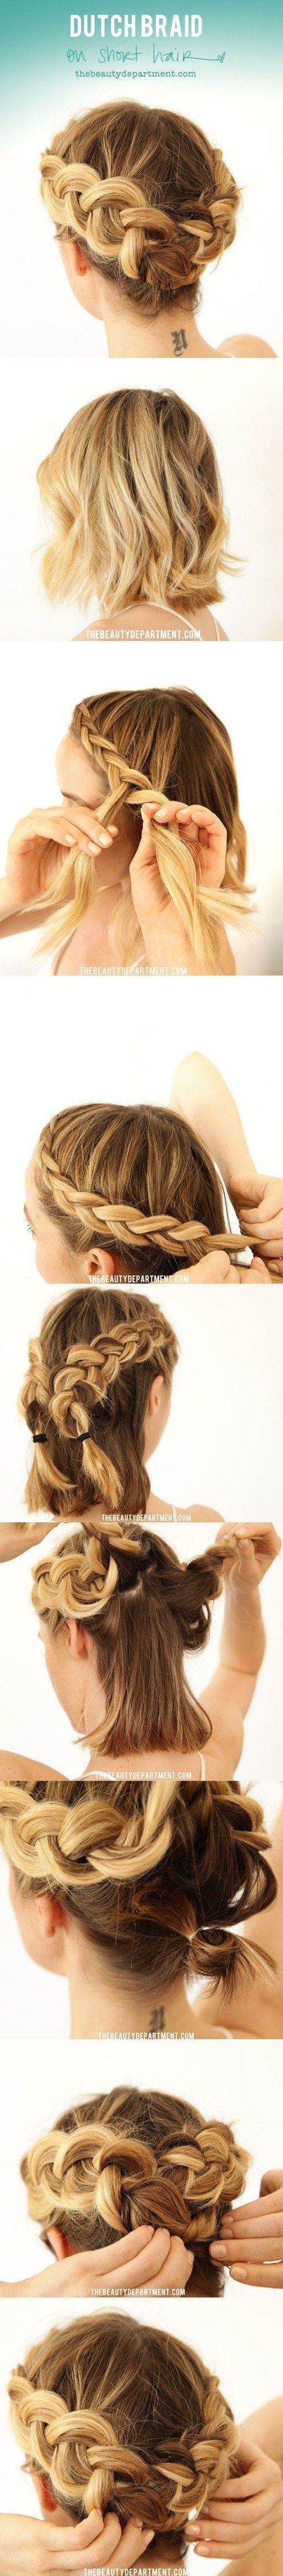 dutch-braid via